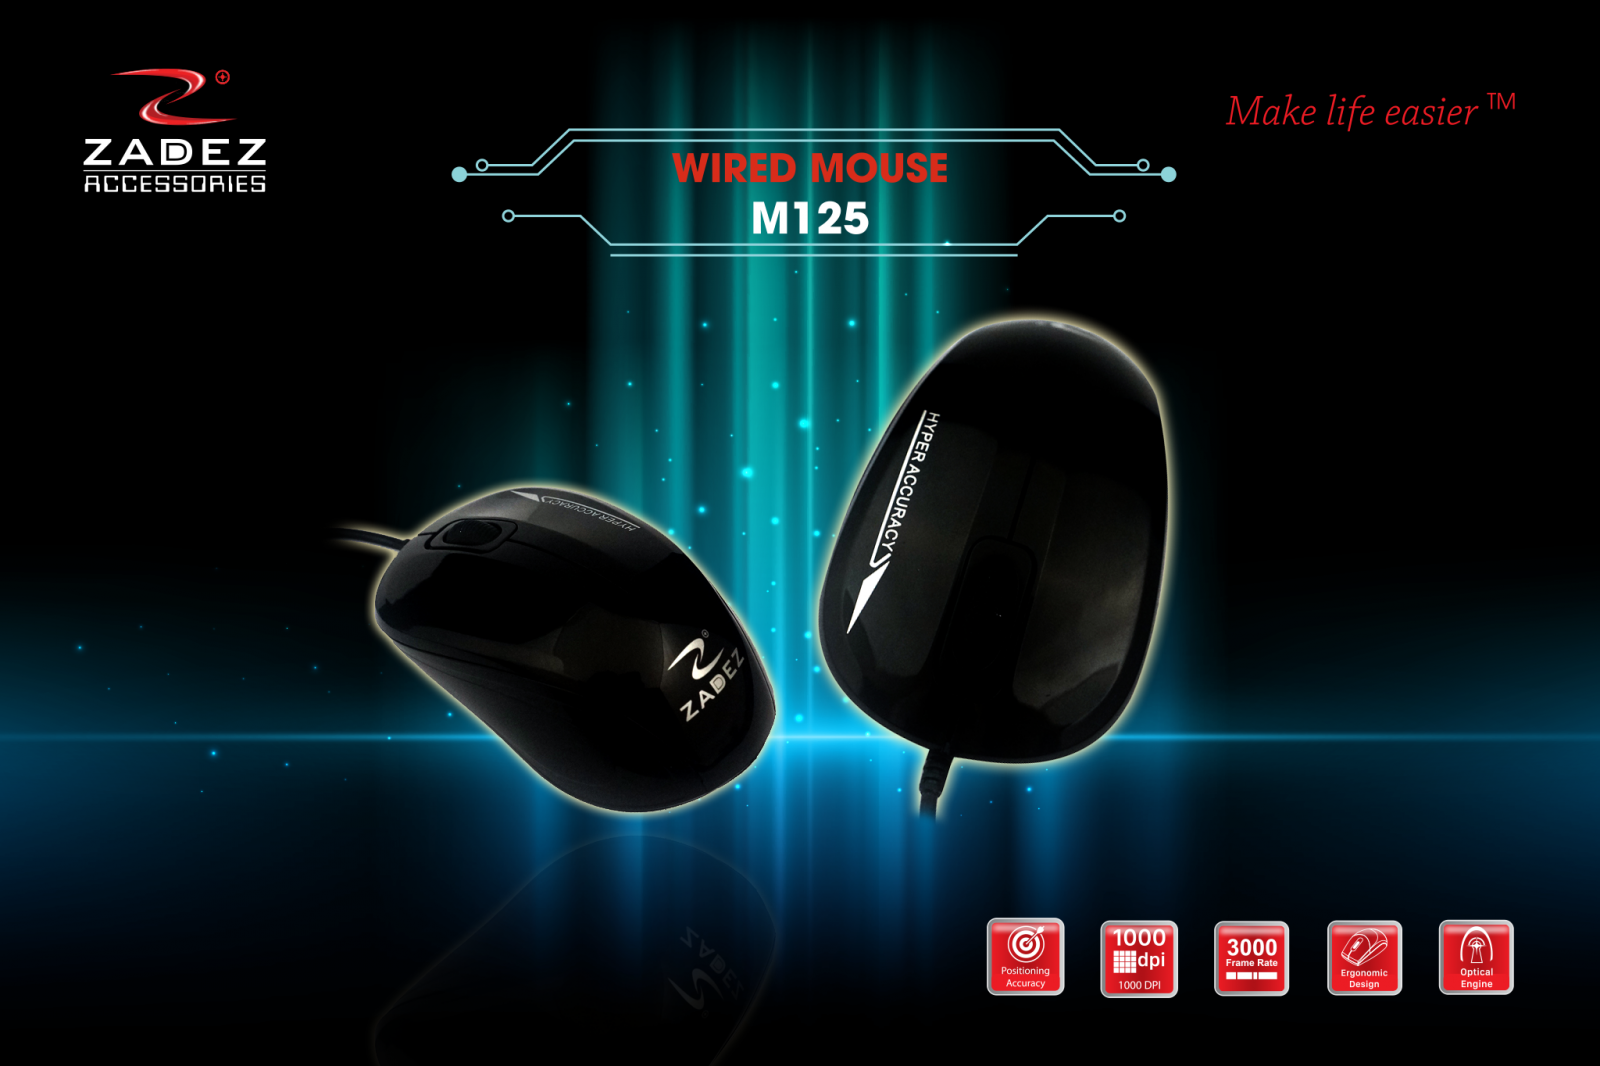 Chuot co day Wired Mouse Zadez M125